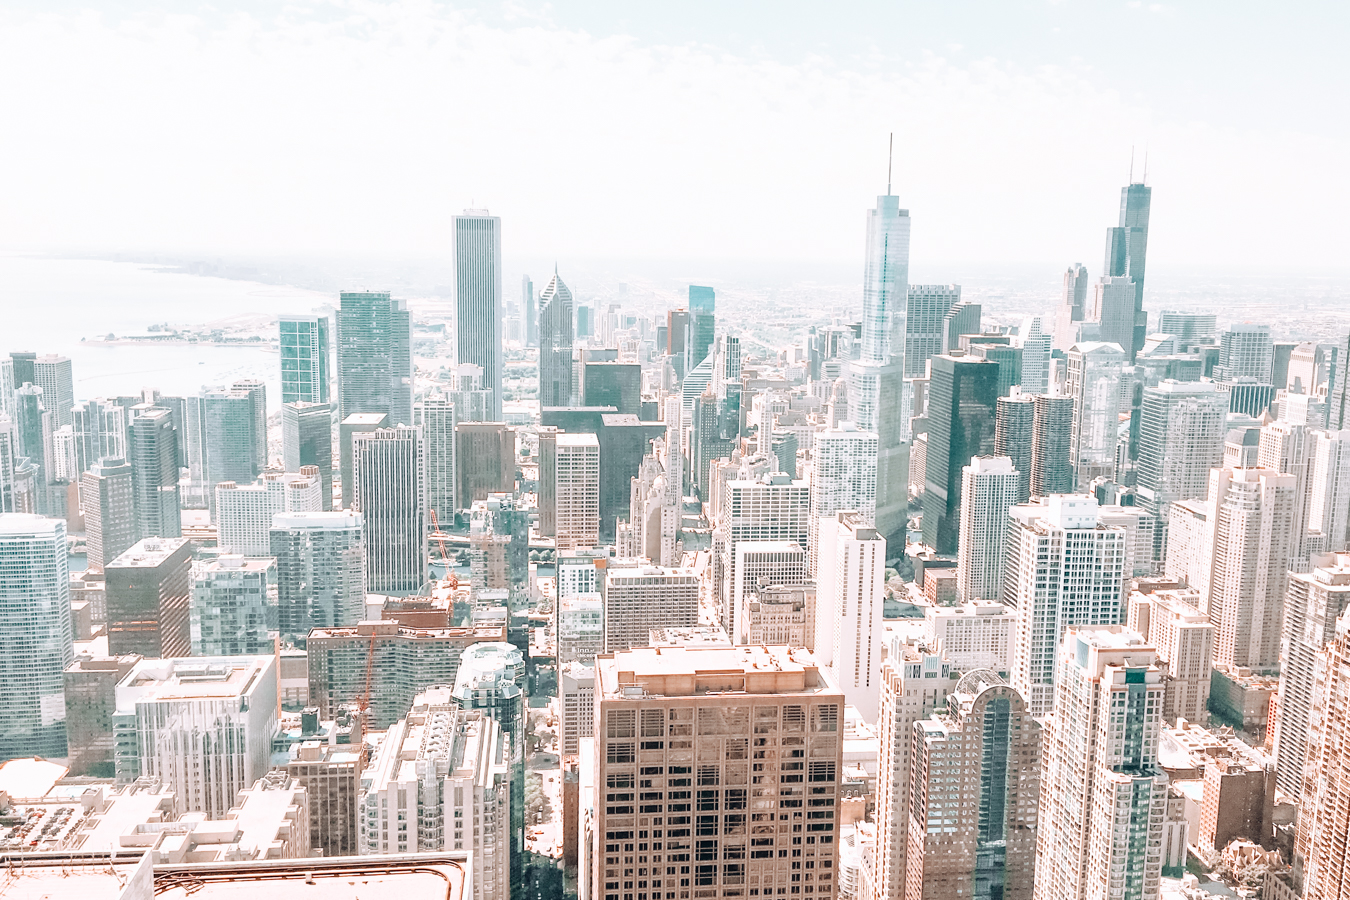 View of Chicago from above